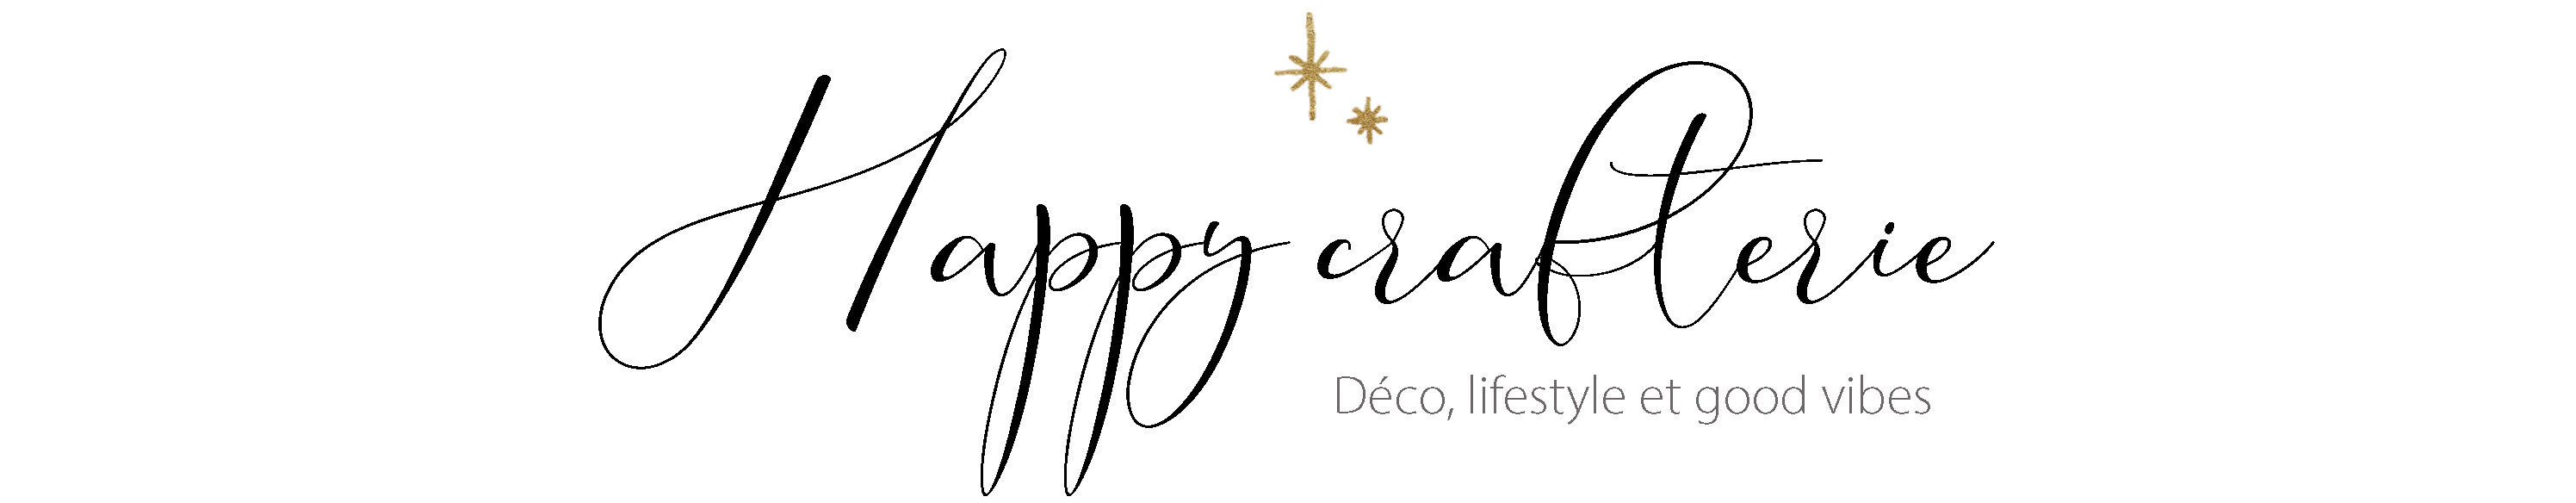 Happy Crafterie – Lifestyle créatif